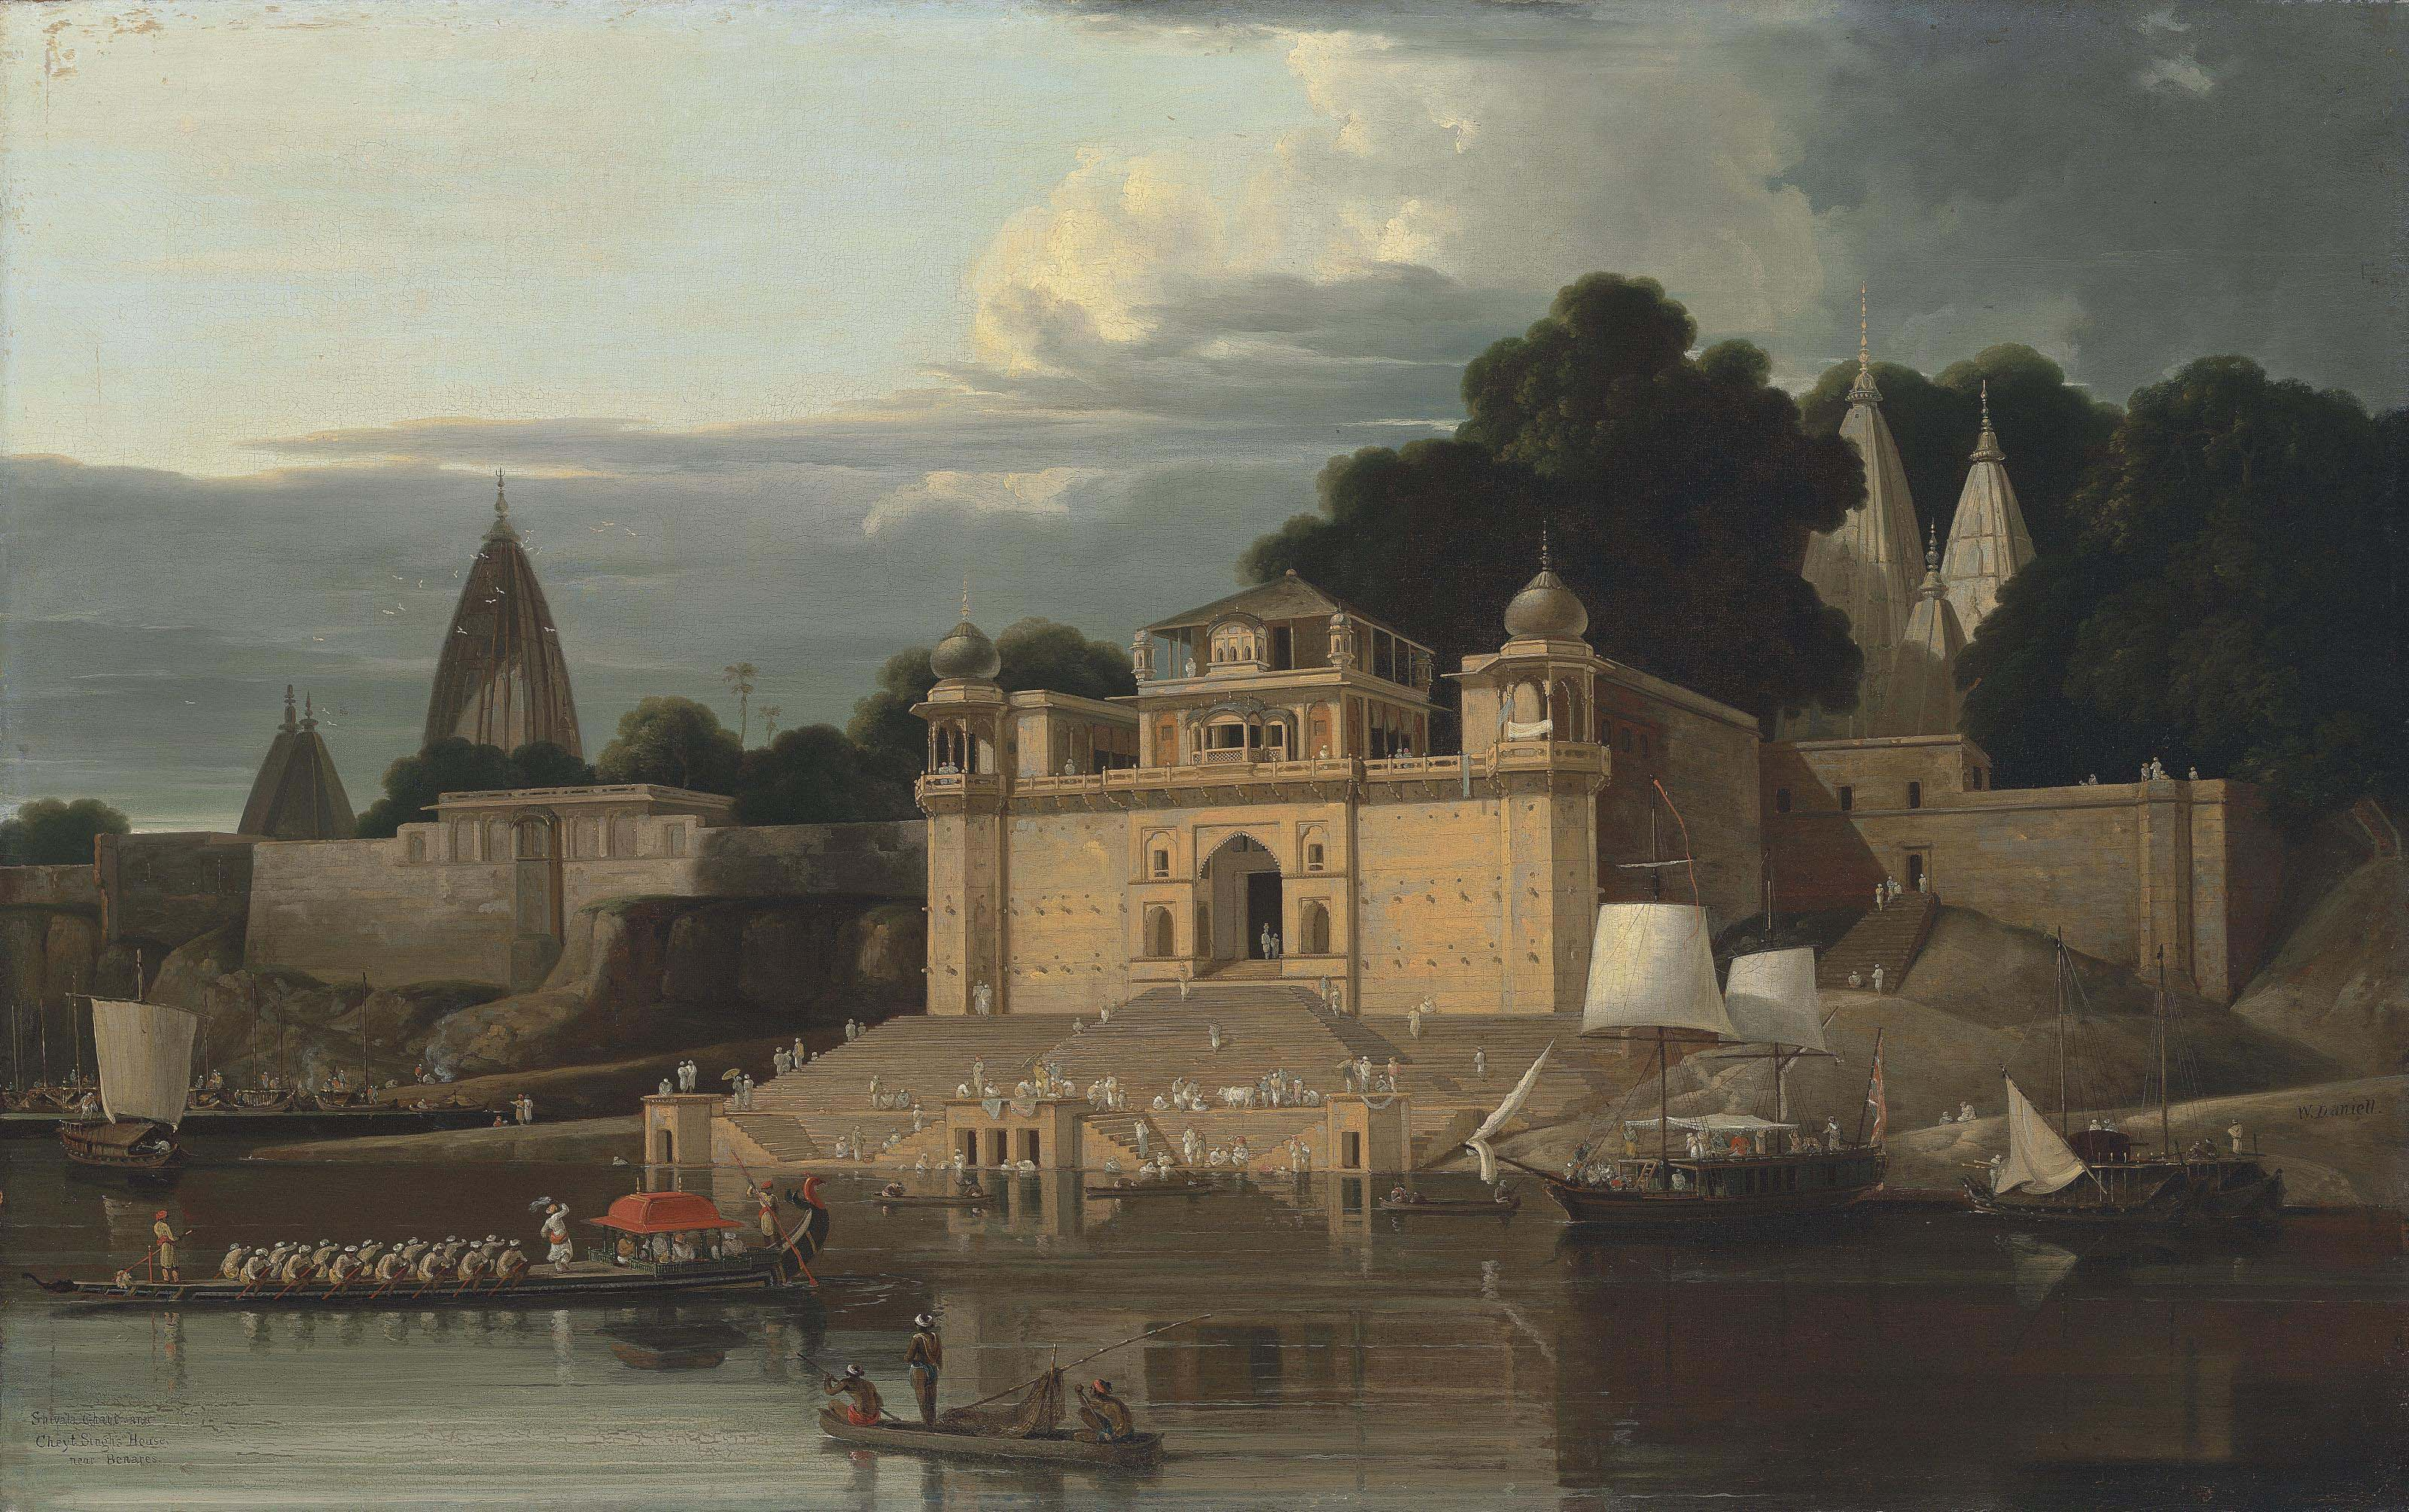 Shivala Ghaut and Cheyt Singh's House near Benares